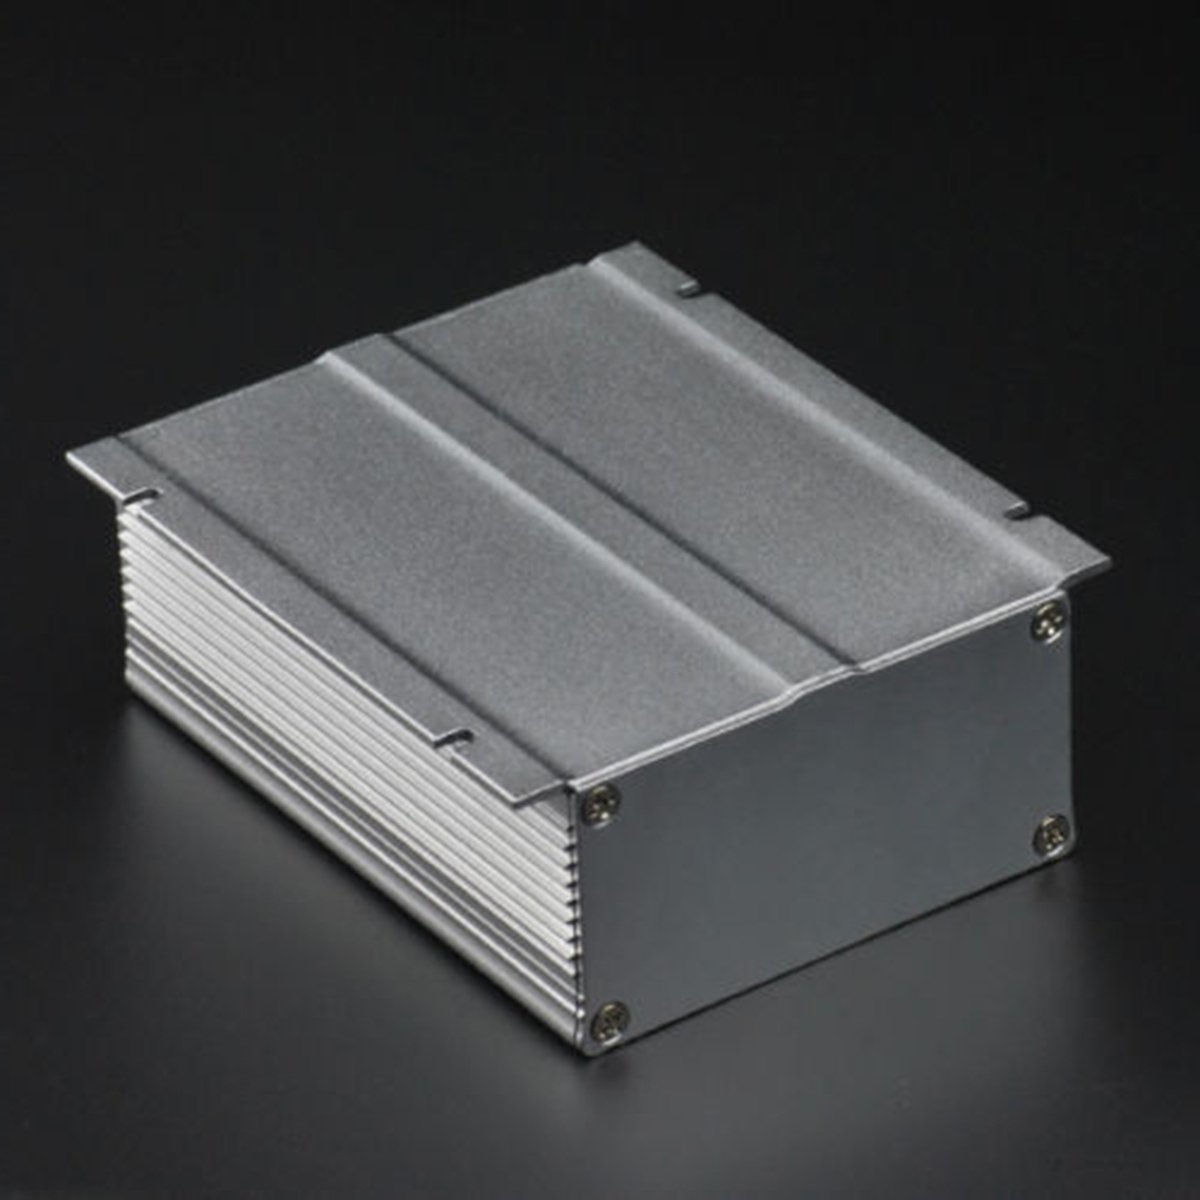 1pc Extruded Aluminum Electronic Power Enclosure Box PCB Instrument Case 88x39x100mm For Holding Circuit Board 1 piece free shipping aluminum amplifier case extruded aluminum box projects 96x33x140 mm aluminium profile